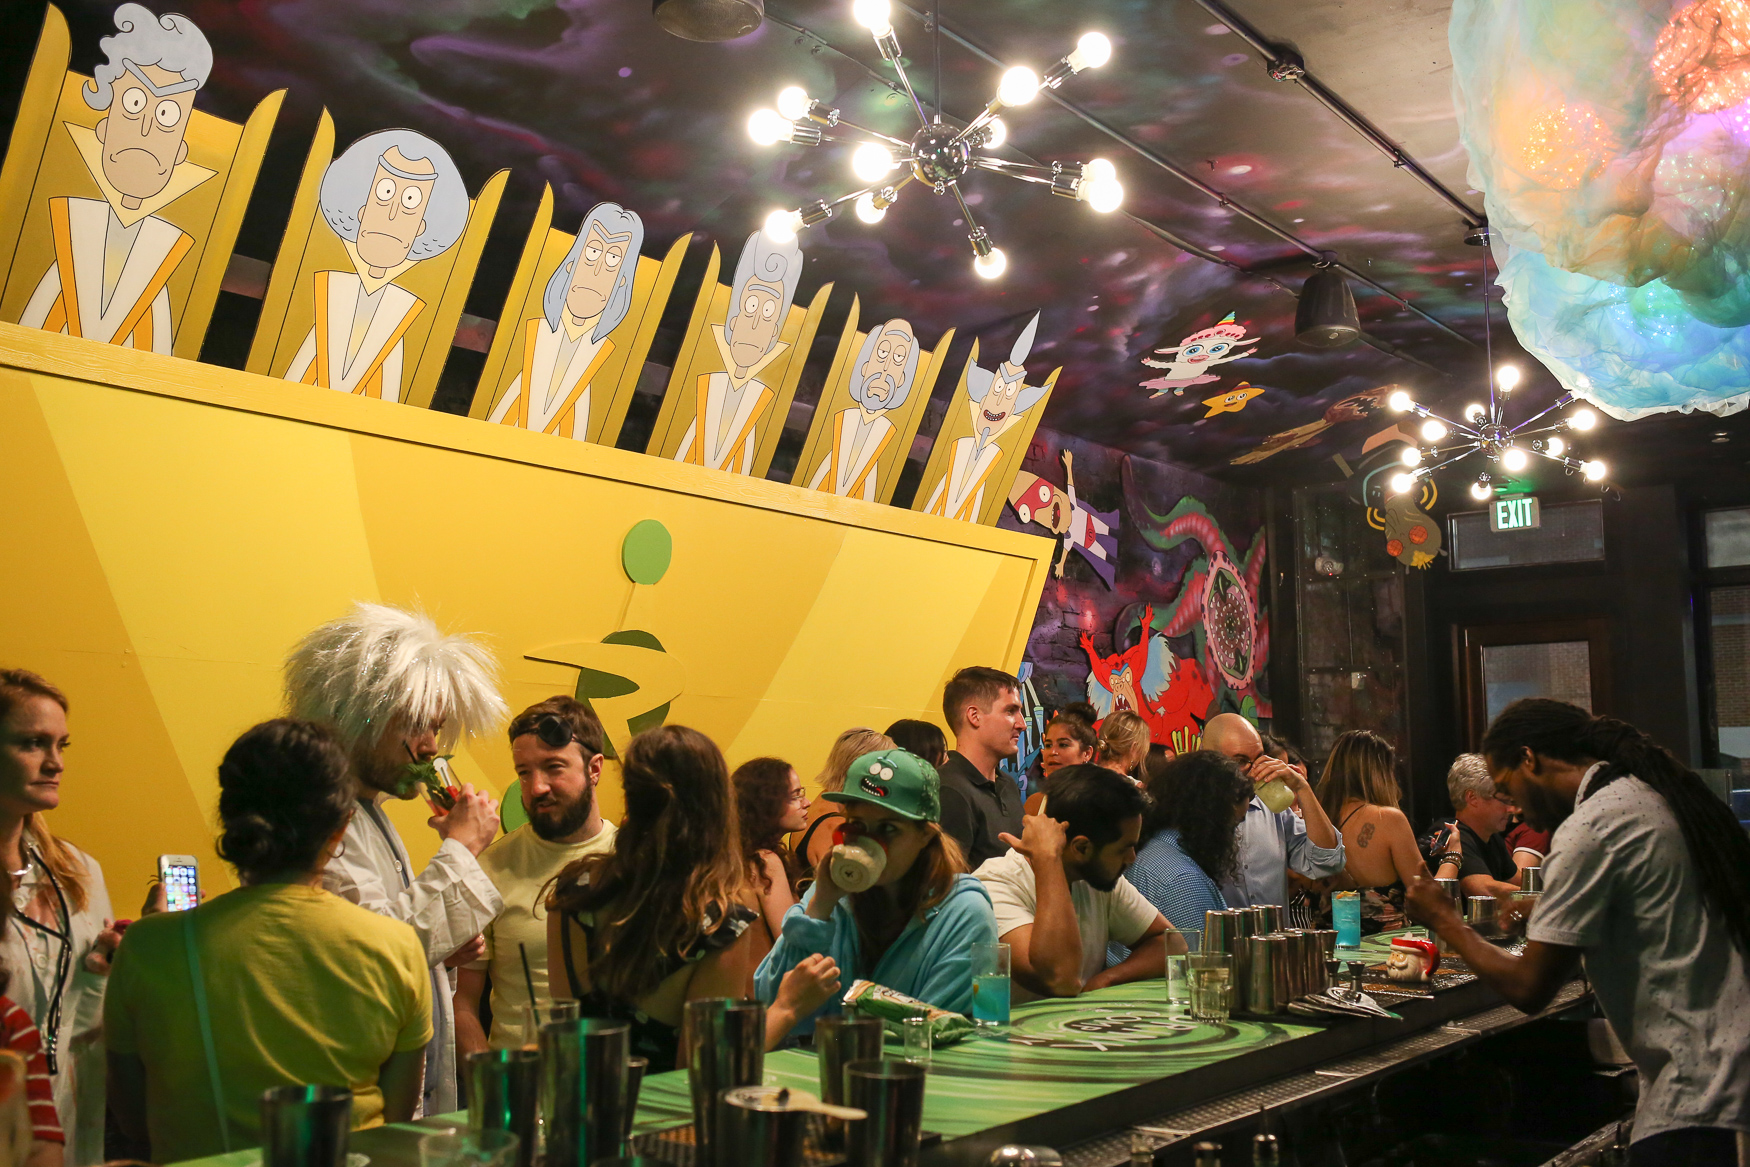 Wubba Lubba Dub Pubis set to{ } bring 'Rick and Morty' to our universe on August 16.The latest version of the pop-up bar from Drink Company honors all of the details of 'Rick and Morty', a show on Cartoon Network aimed at millennials.{ } The space includes a karaoke portion, but if you're feeling low key, you can still enjoy the themed cocktails and super detailed decor. As a bonus, if you dress like Rick, you can beat the line and get through the separate 'Ricks Only' door. (Amanda Andrade-Rhoades/DC Refined)